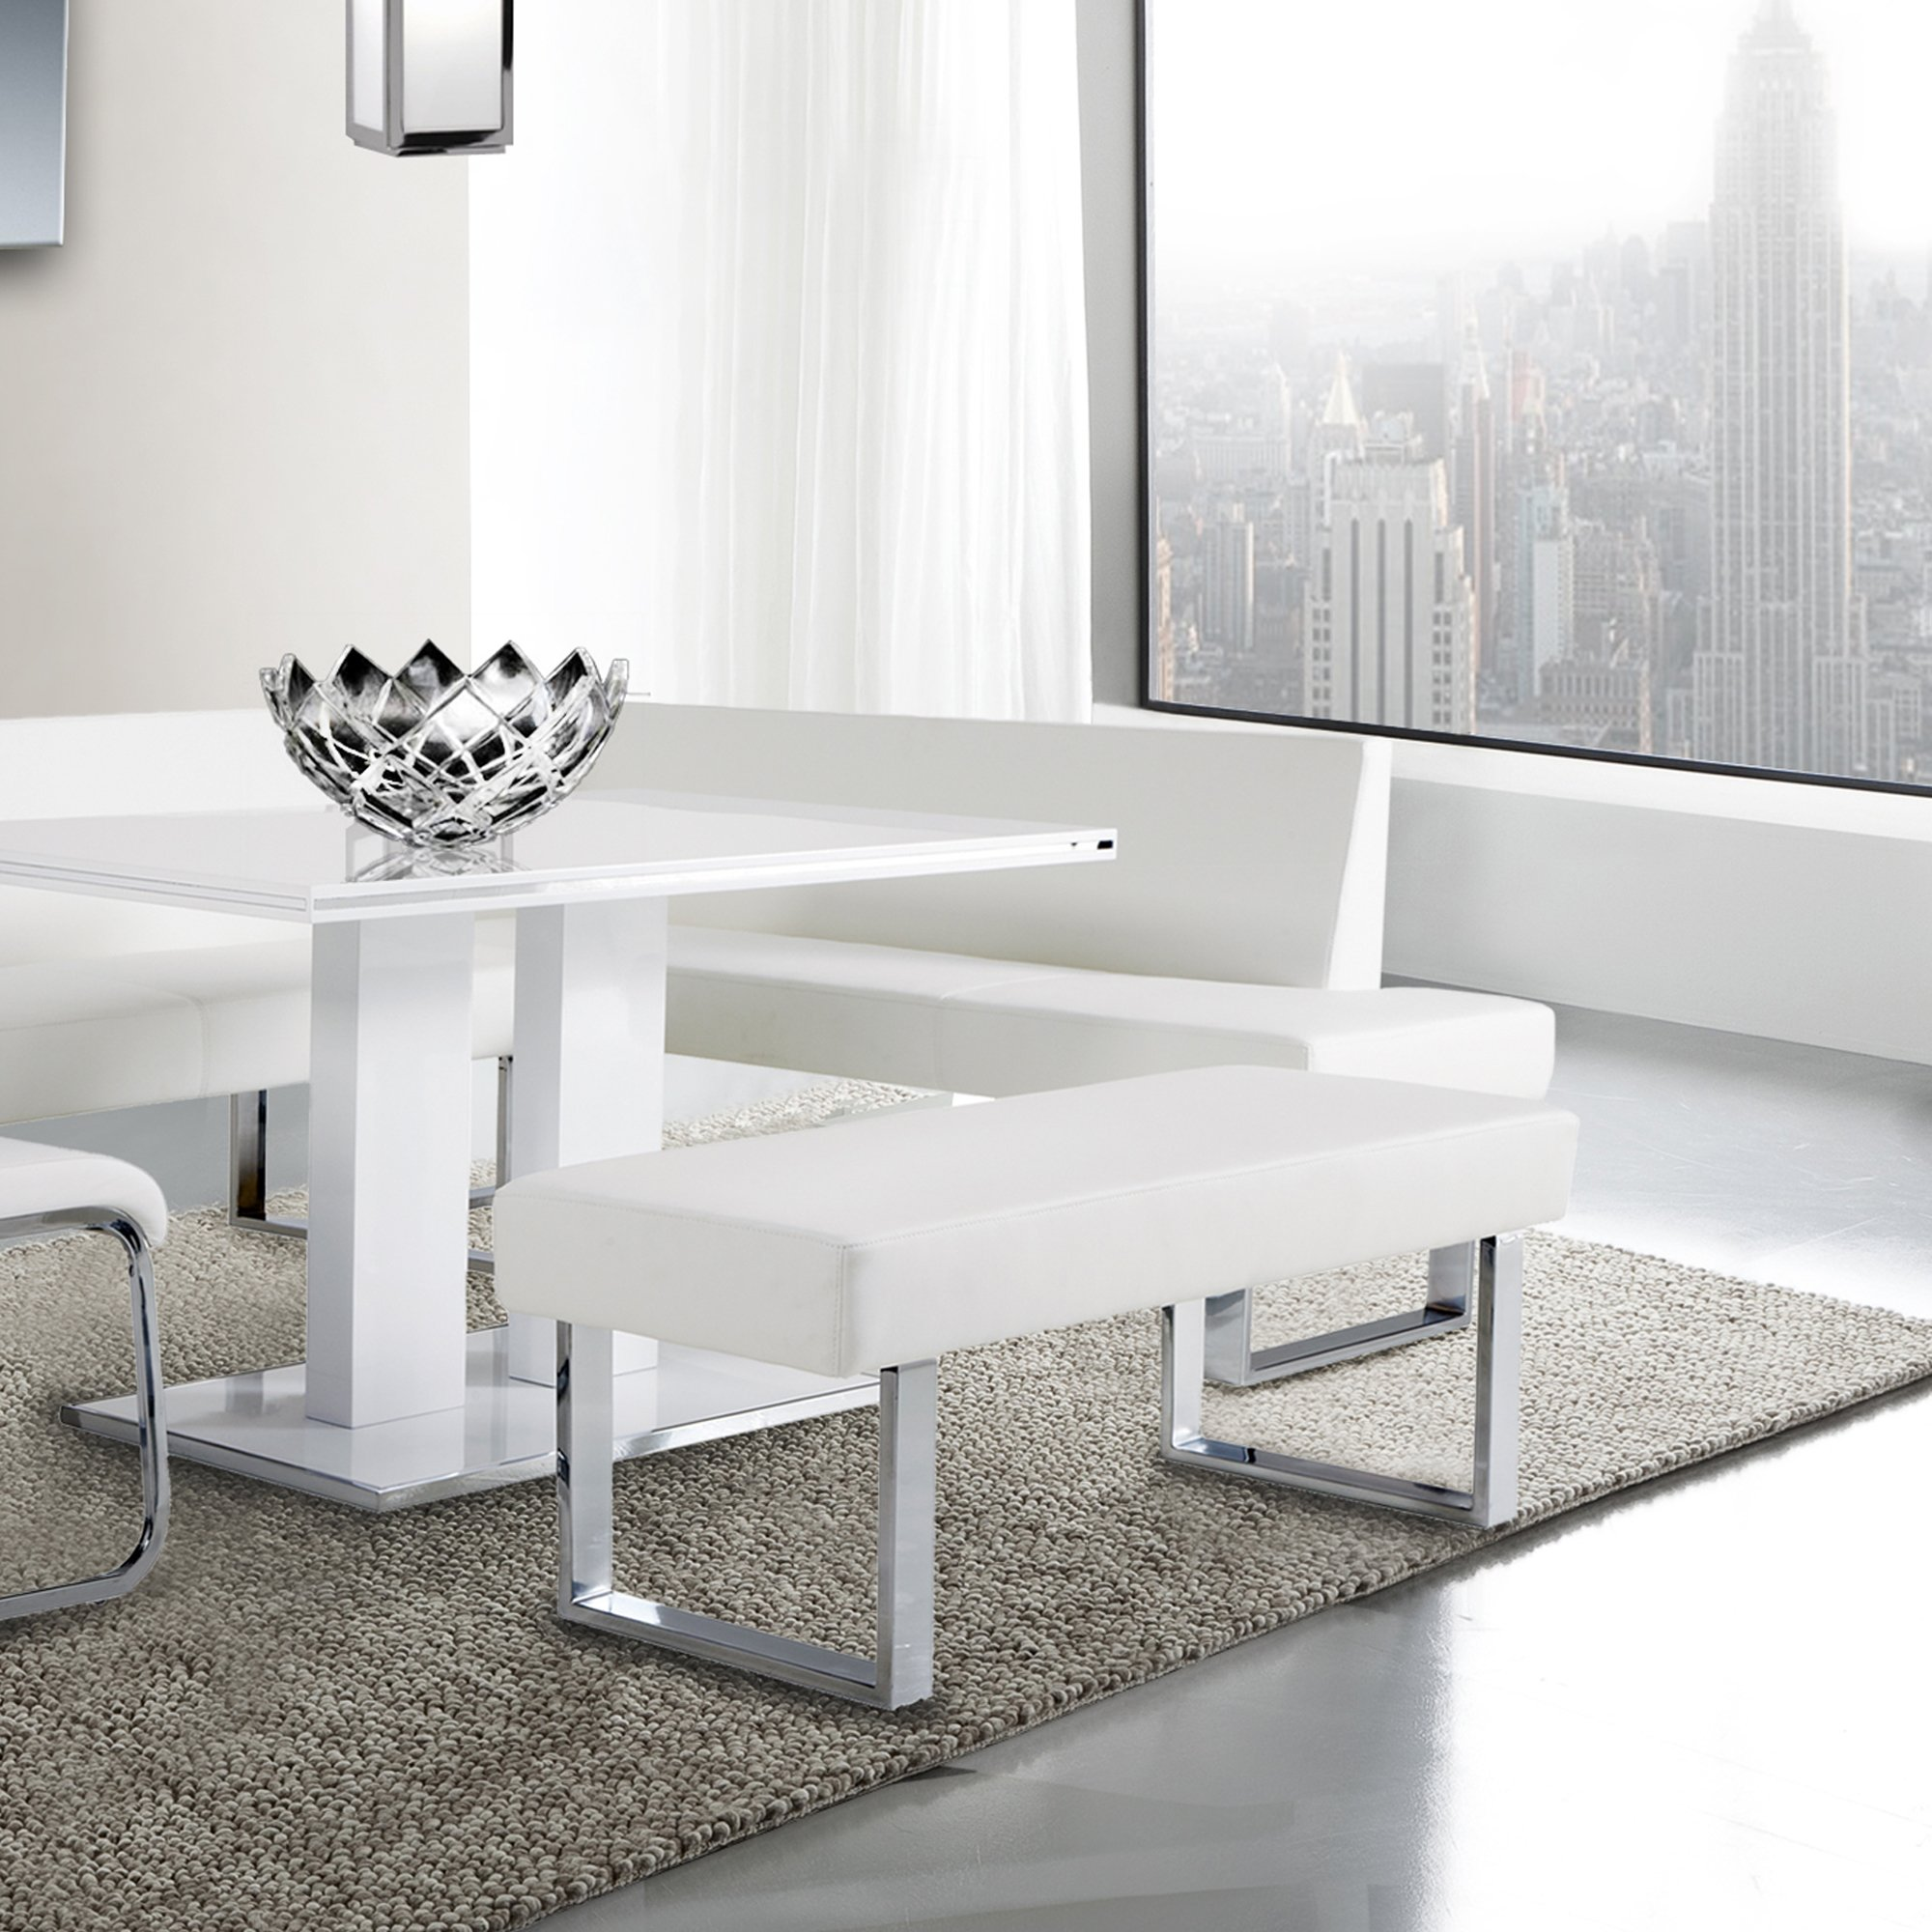 Details about White Luxury Bench for Bedroom Dining Room Living Room Seat  Modern Dinning NEW